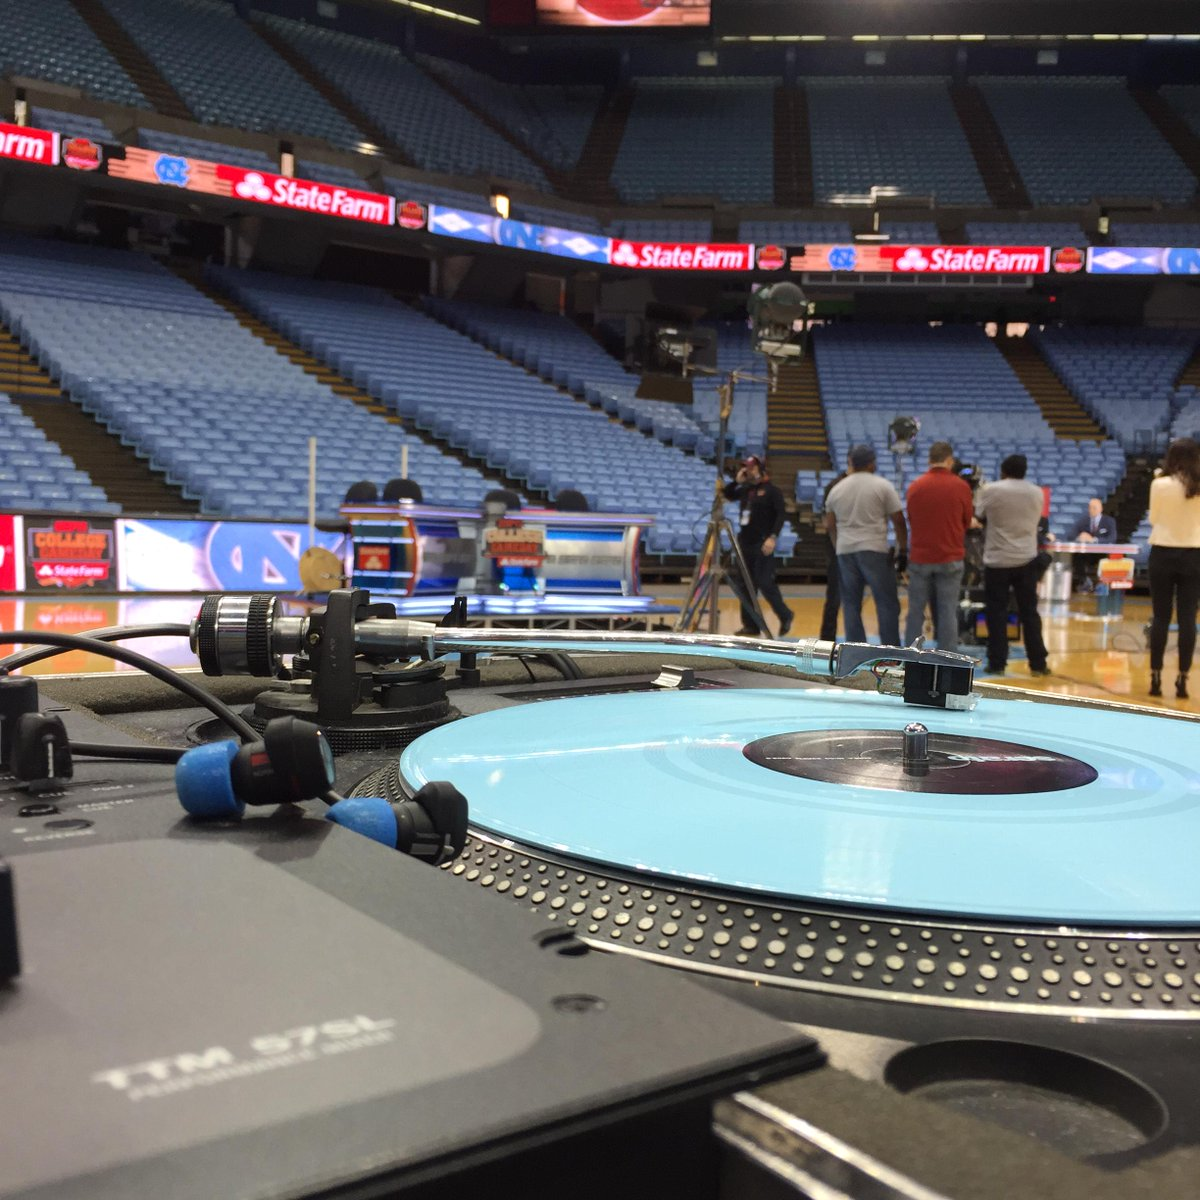 Spinning at ESPN College Gameday today. Thank you @espn and @GoHeels  for this opportunity http://t.co/1F7hp6rvc0